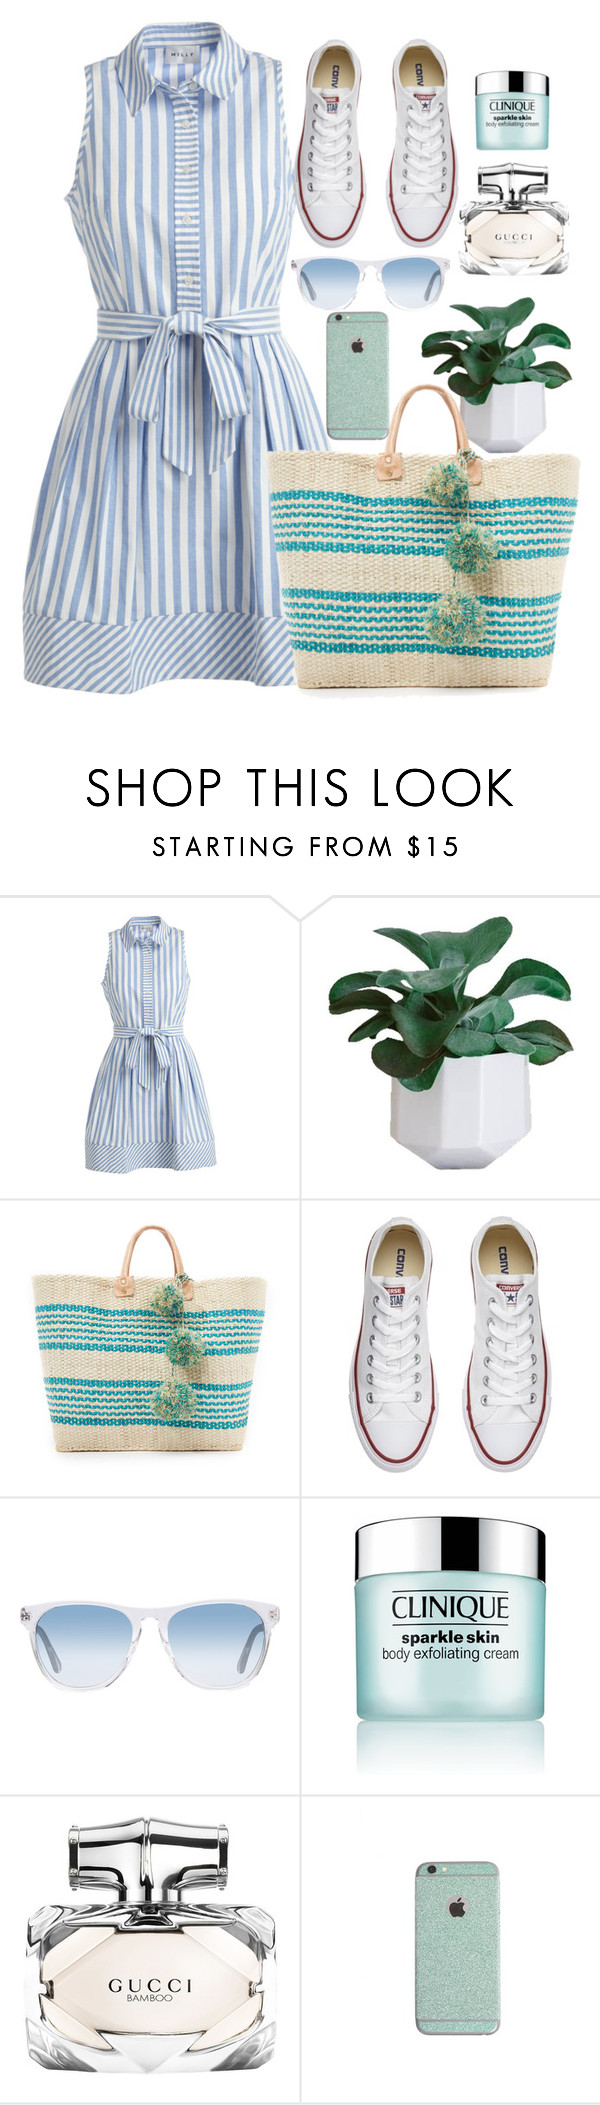 """""""Summer dress"""" by doradabrowska ❤ liked on Polyvore featuring Milly, Mar y Sol, Converse, Oliver Peoples, Clinique and Gucci"""